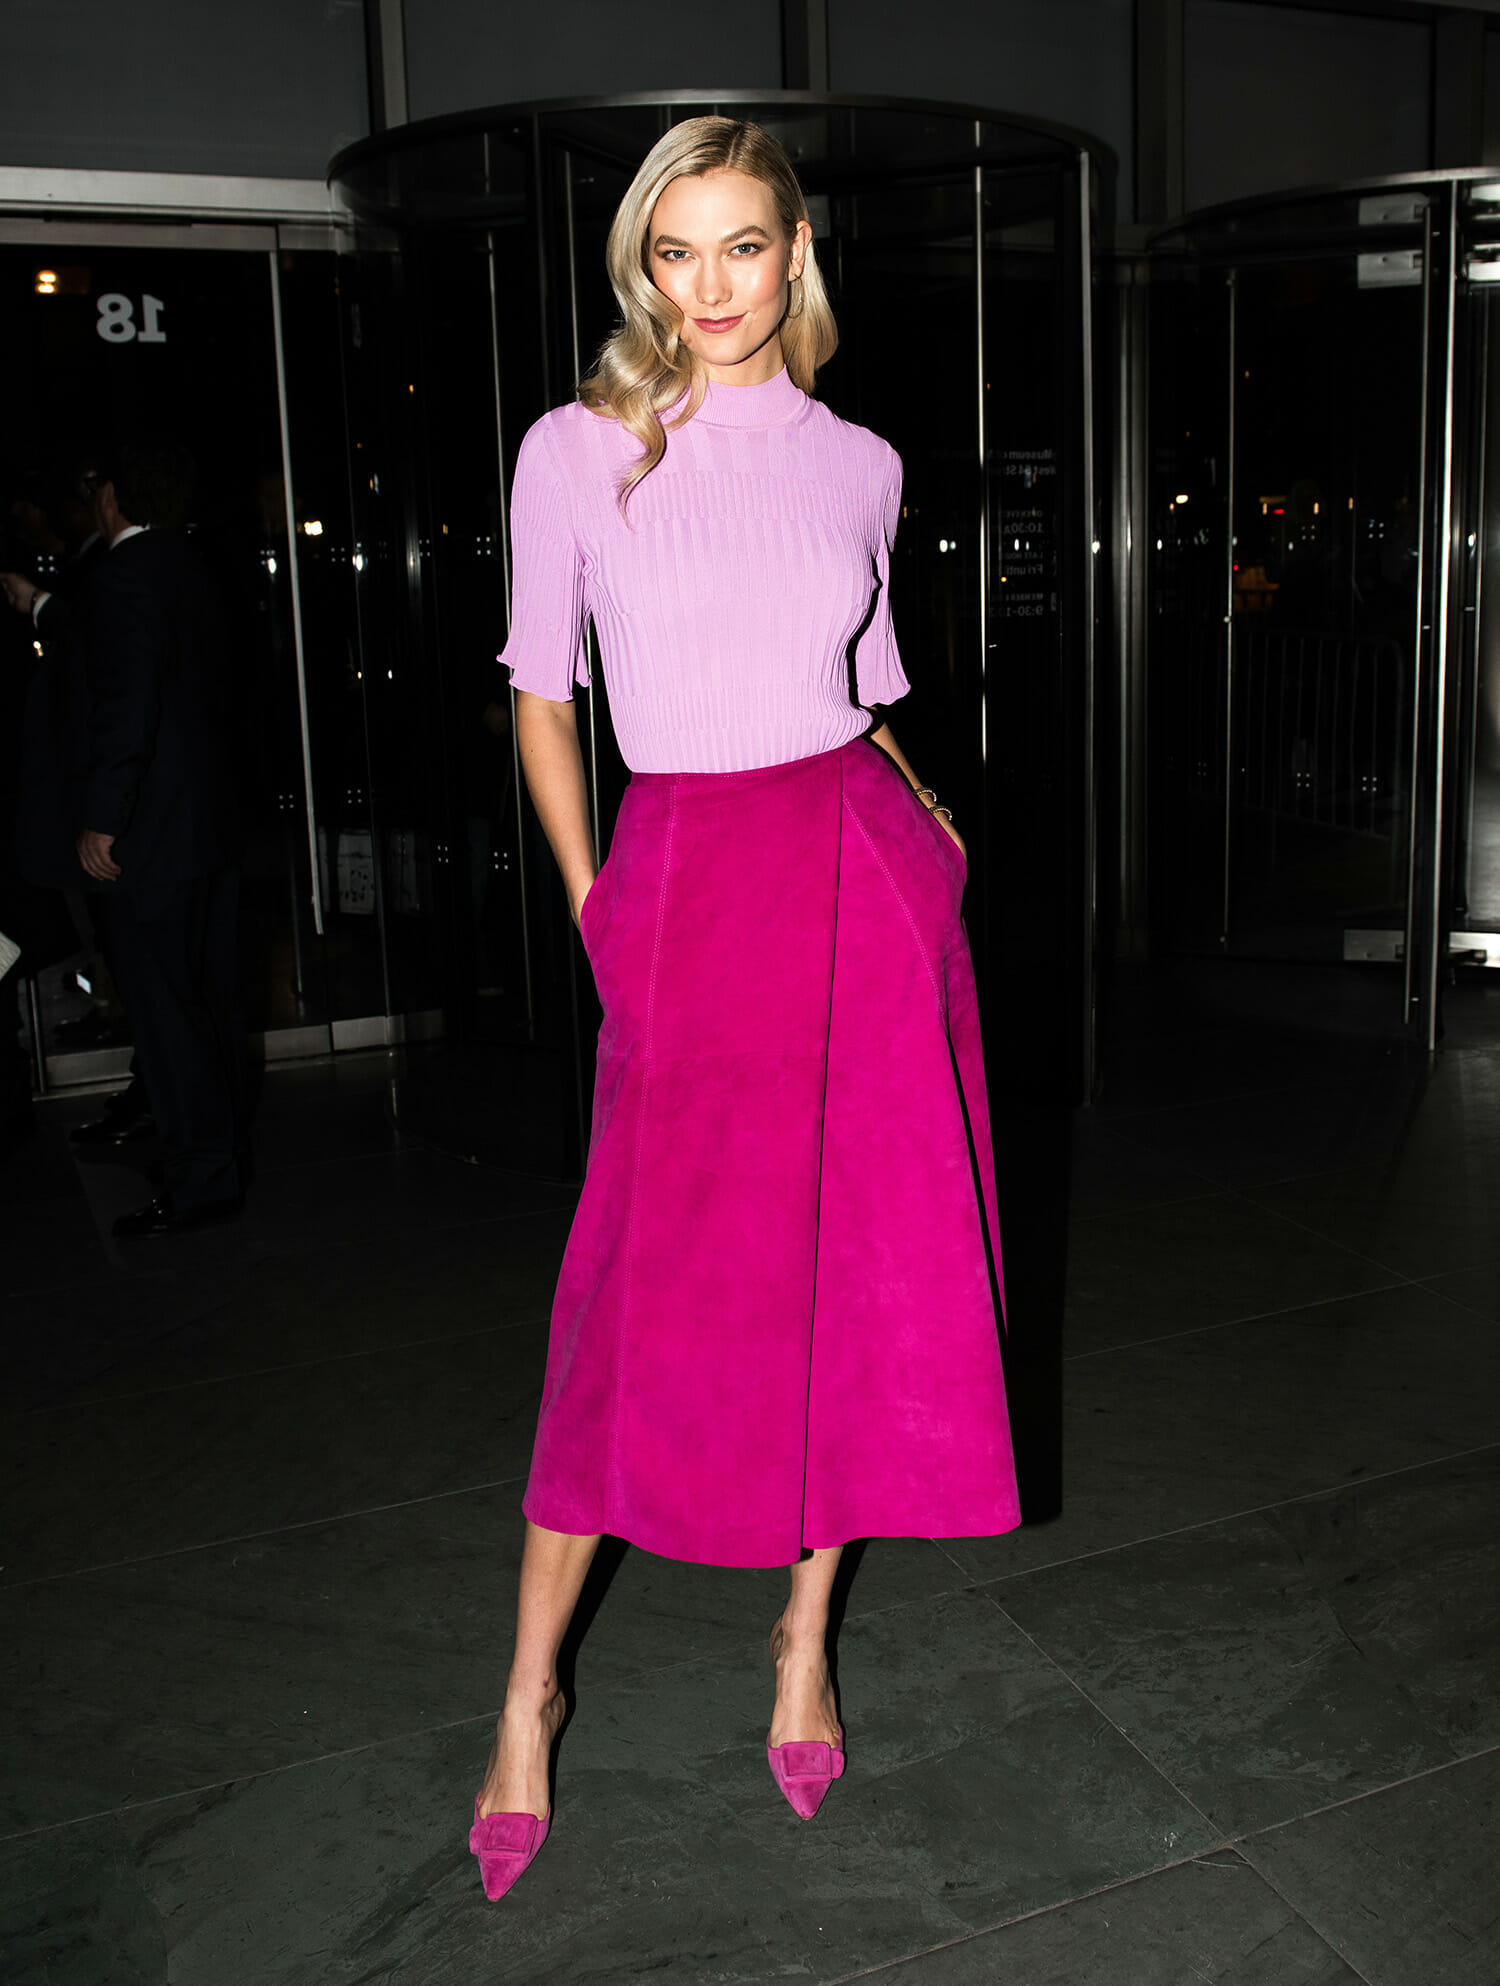 chny-fashion-Karlie-Kloss-wearing-carolina-herrera